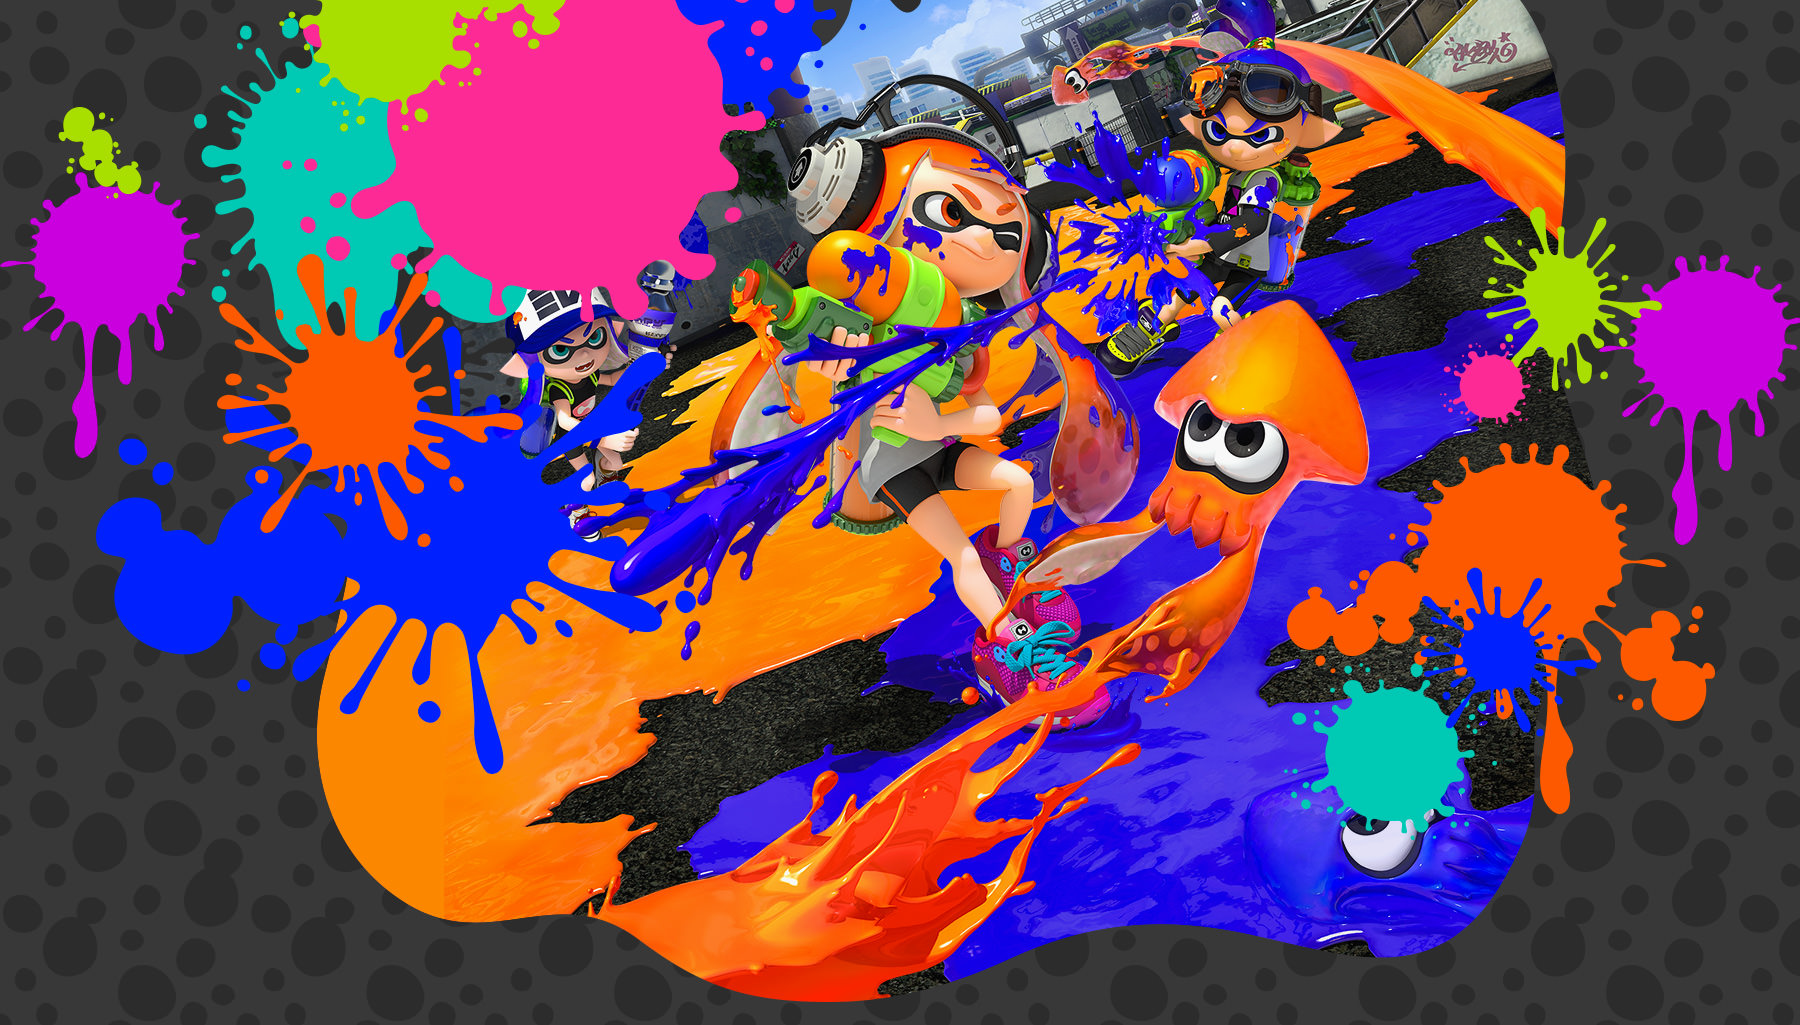 splatoon lets you use aim with the gamepad s controls but